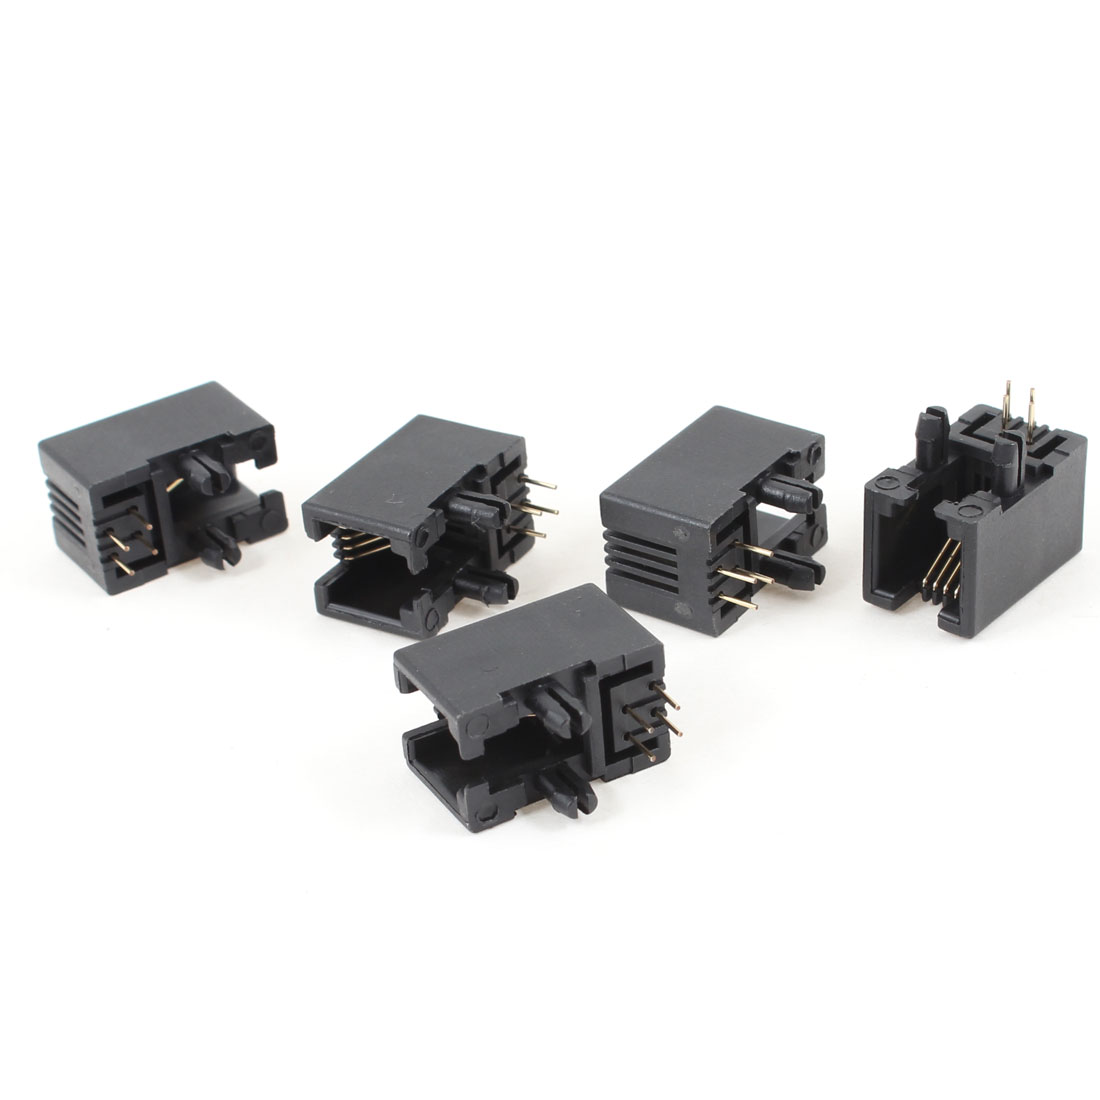 5 Pcs Black Plastic Unshielded RJ9 4P4C Network Modular PCB Connector Jacks